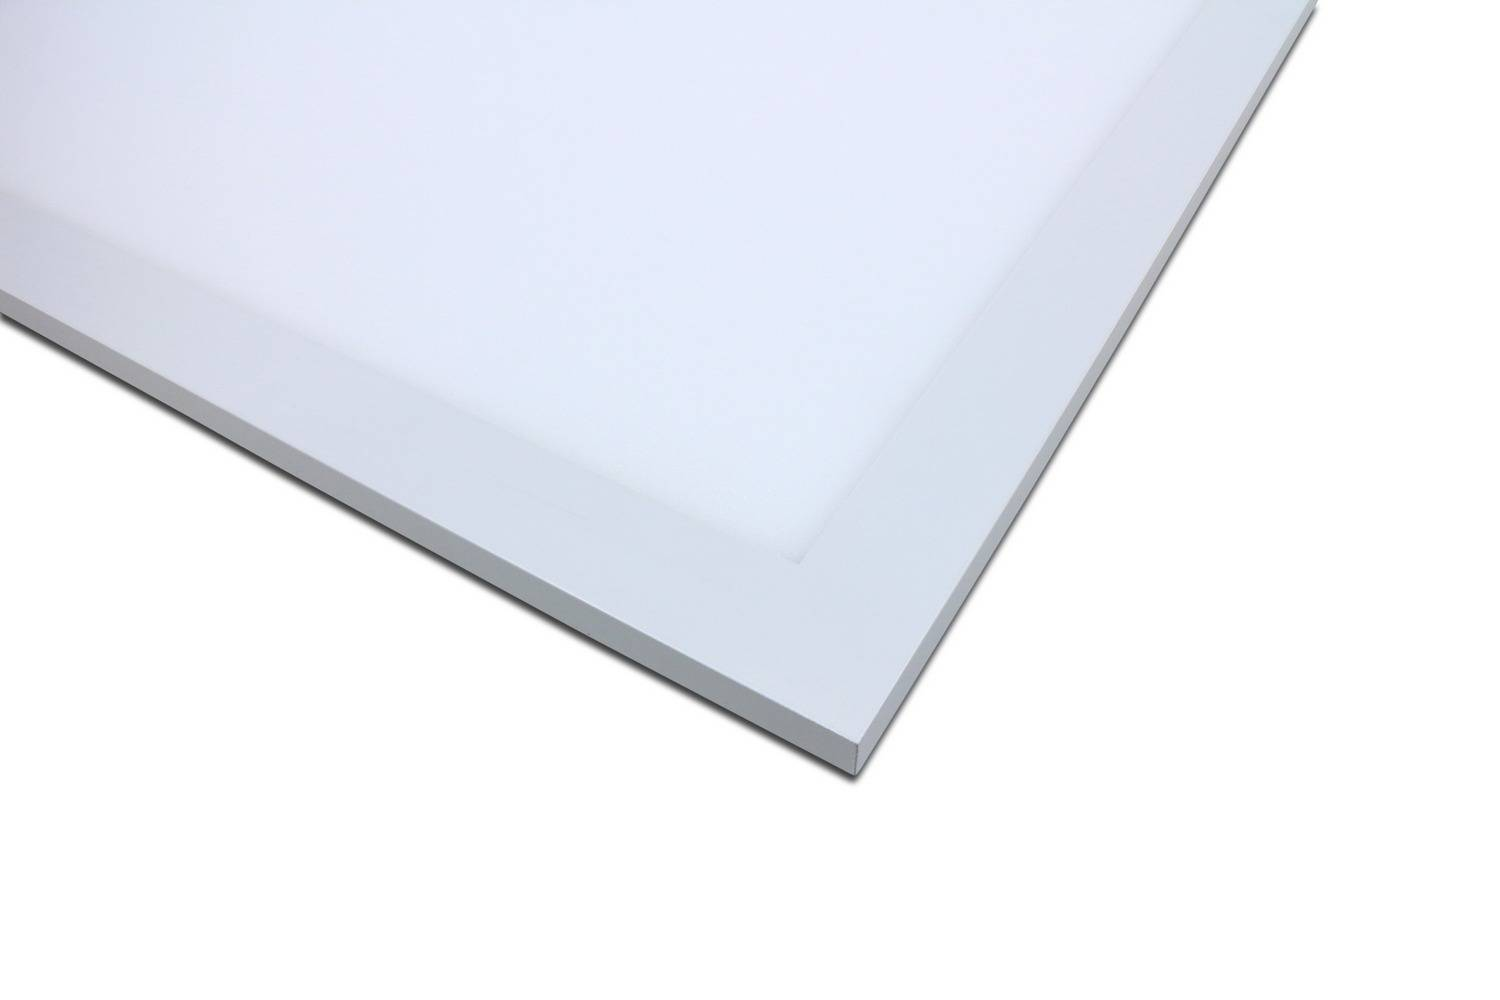 CCT LED panel light ultra-thin led flat panel light corner